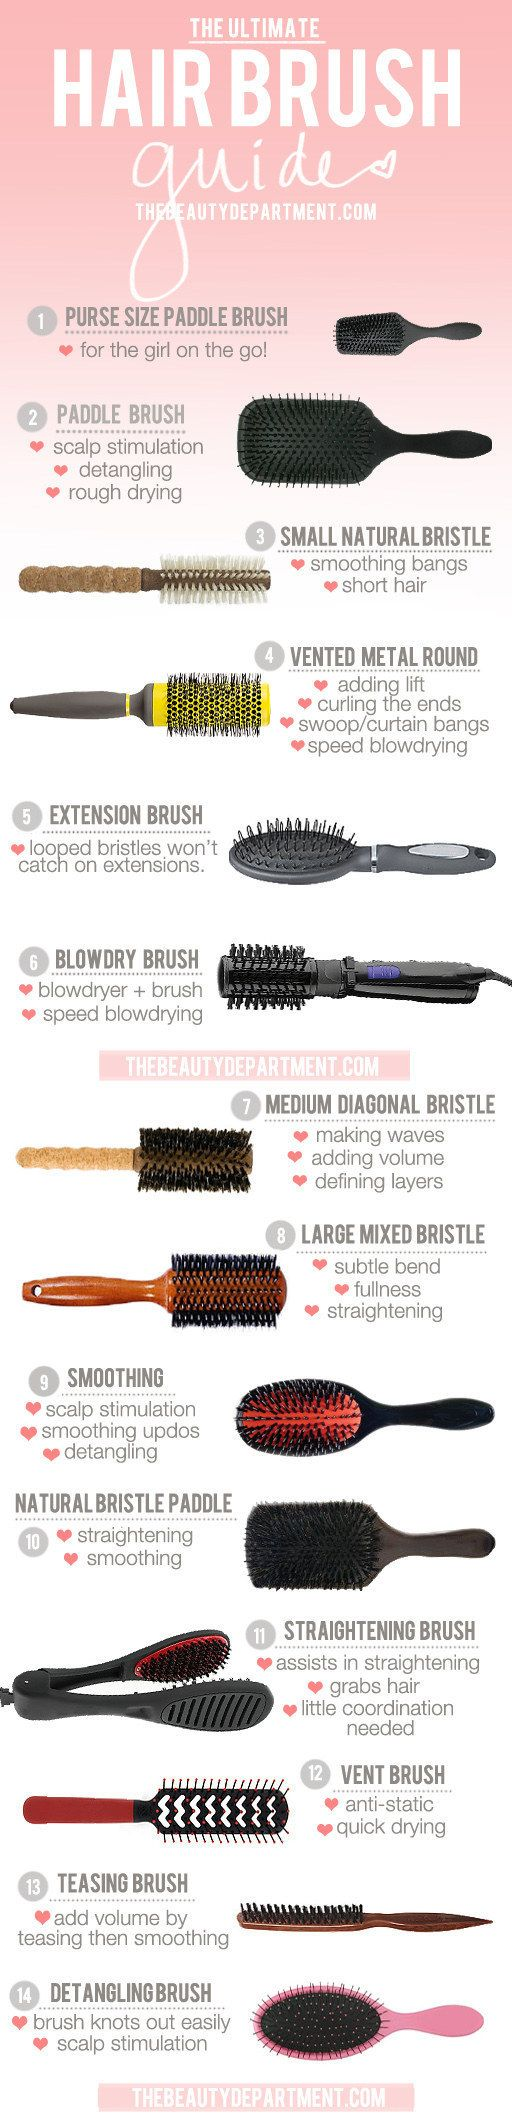 How to brush your hair? The Complete brush guide